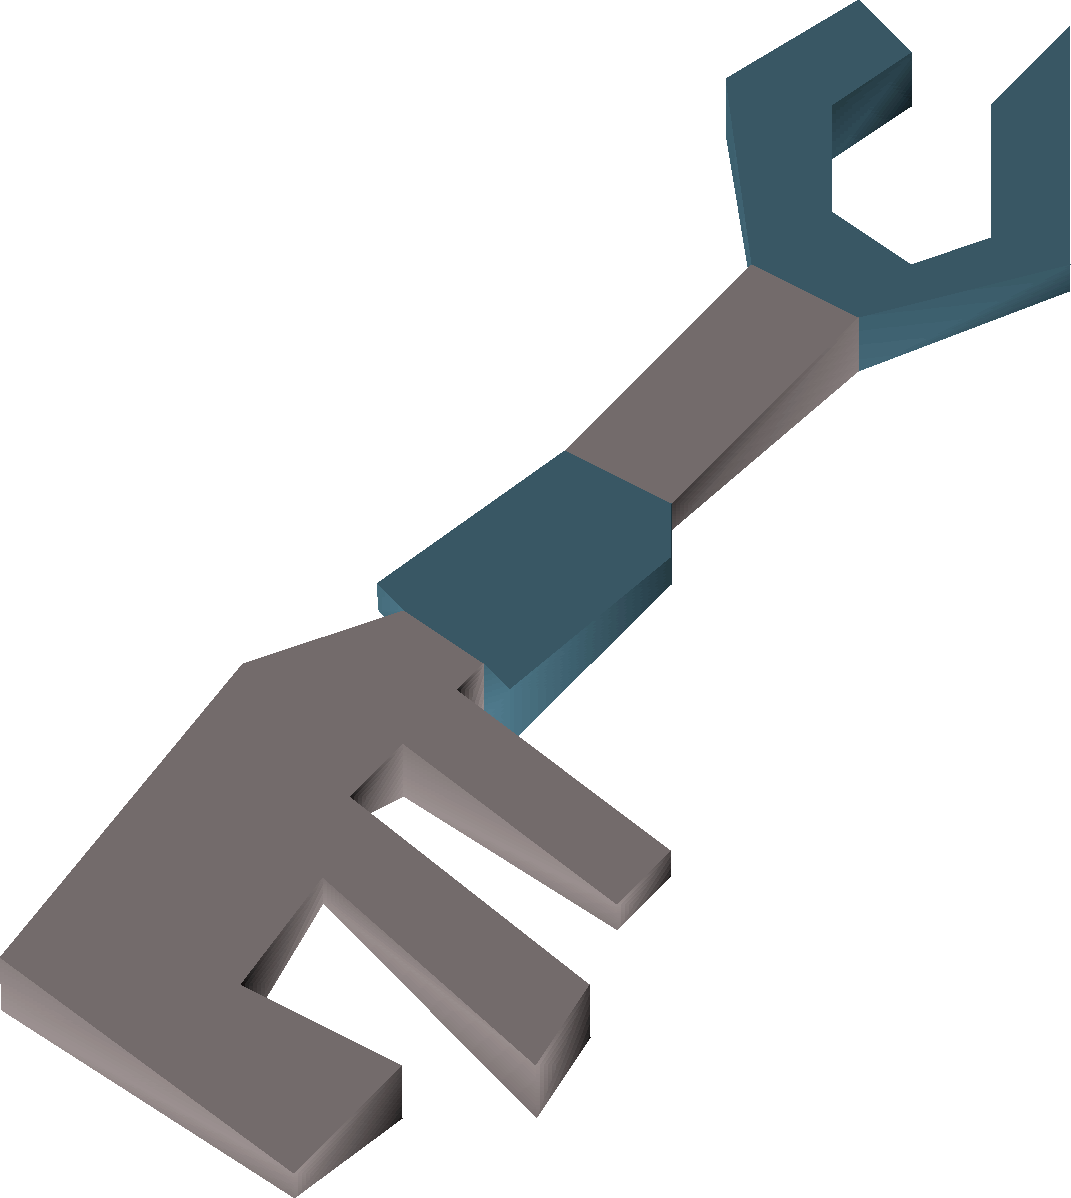 Tower key